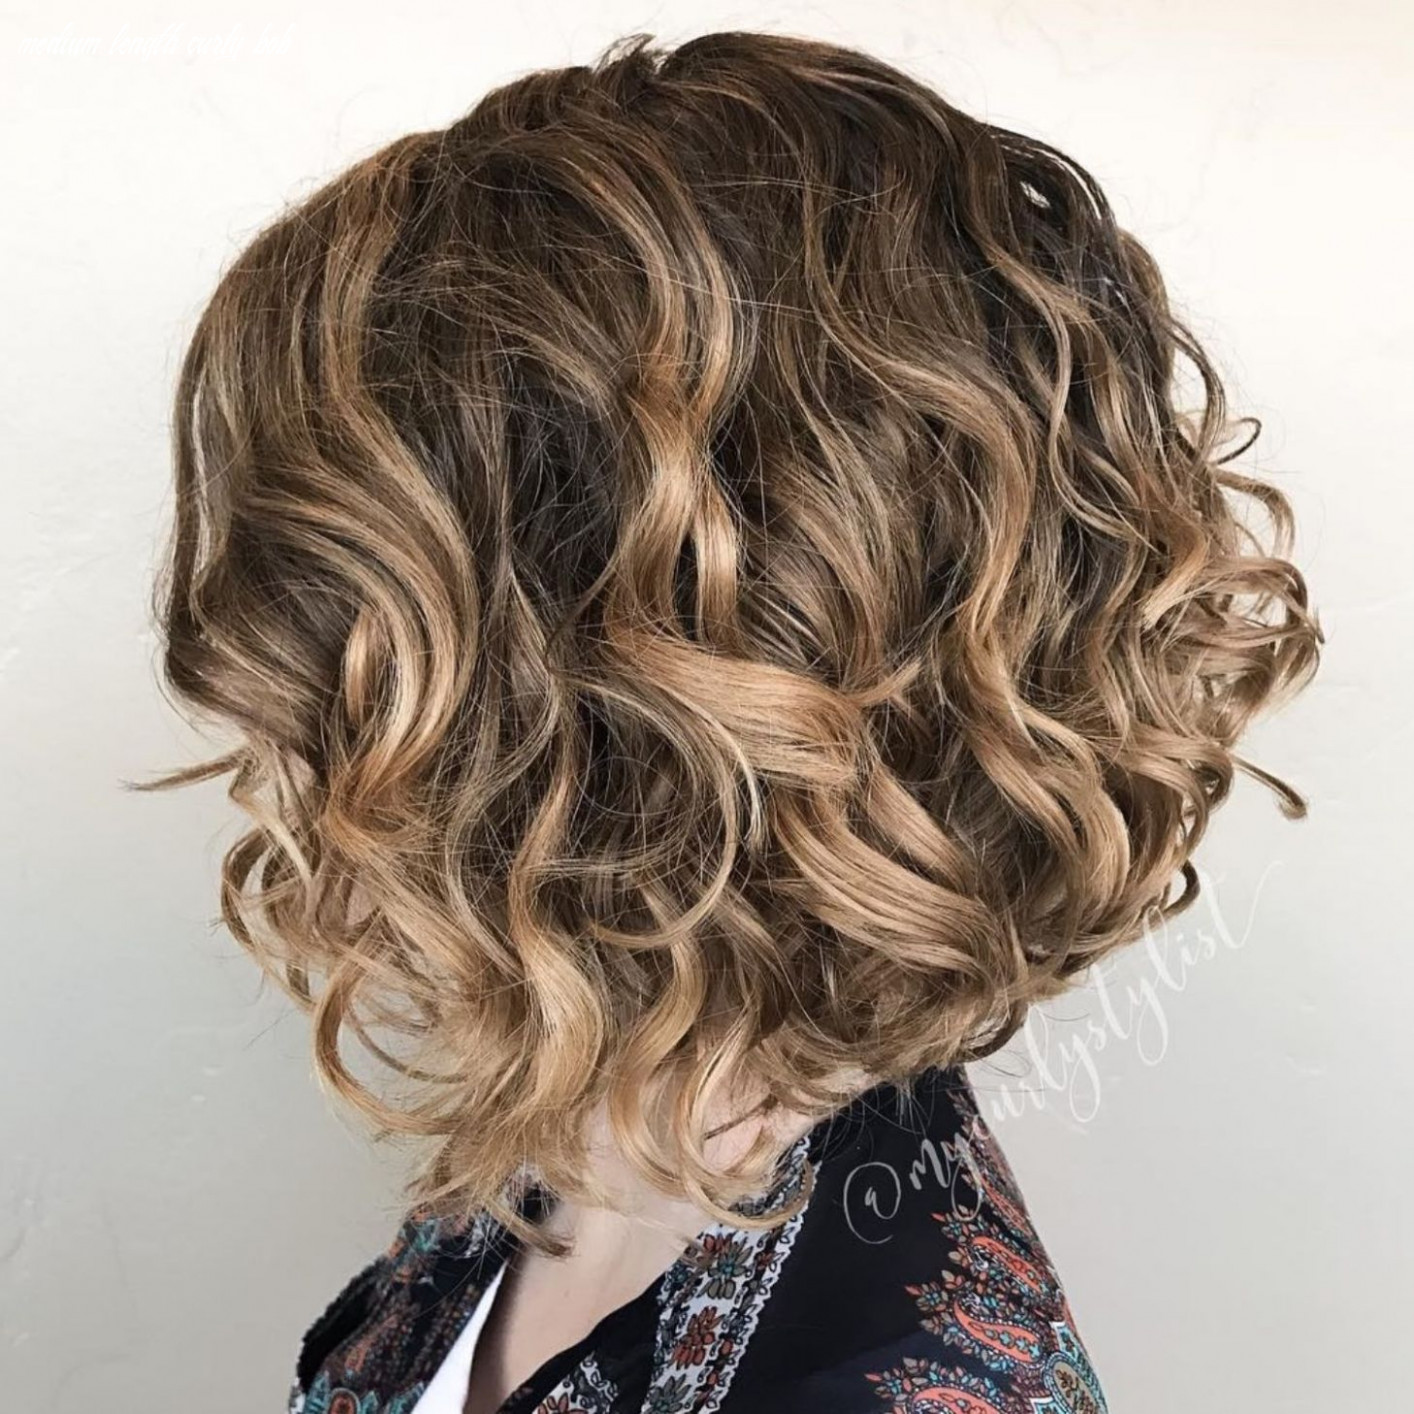 10 Different Versions of Curly Bob Hairstyle in 10 | Curly bob ...